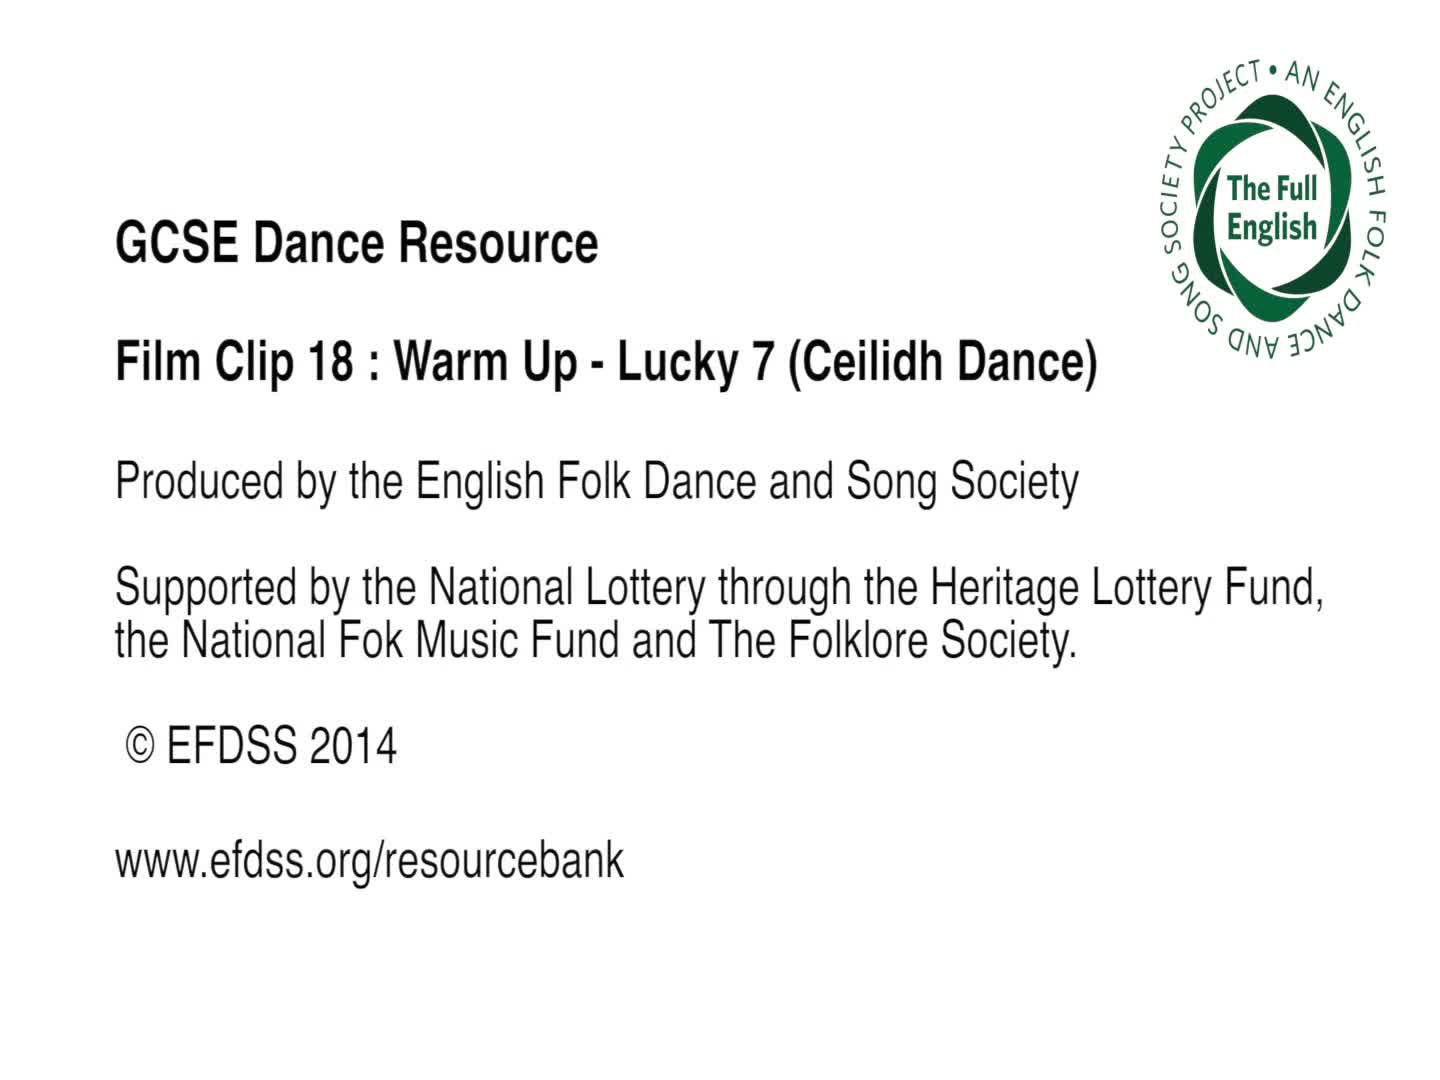 Film Clip 18: Lucky 7 (Ceilidh Dance)